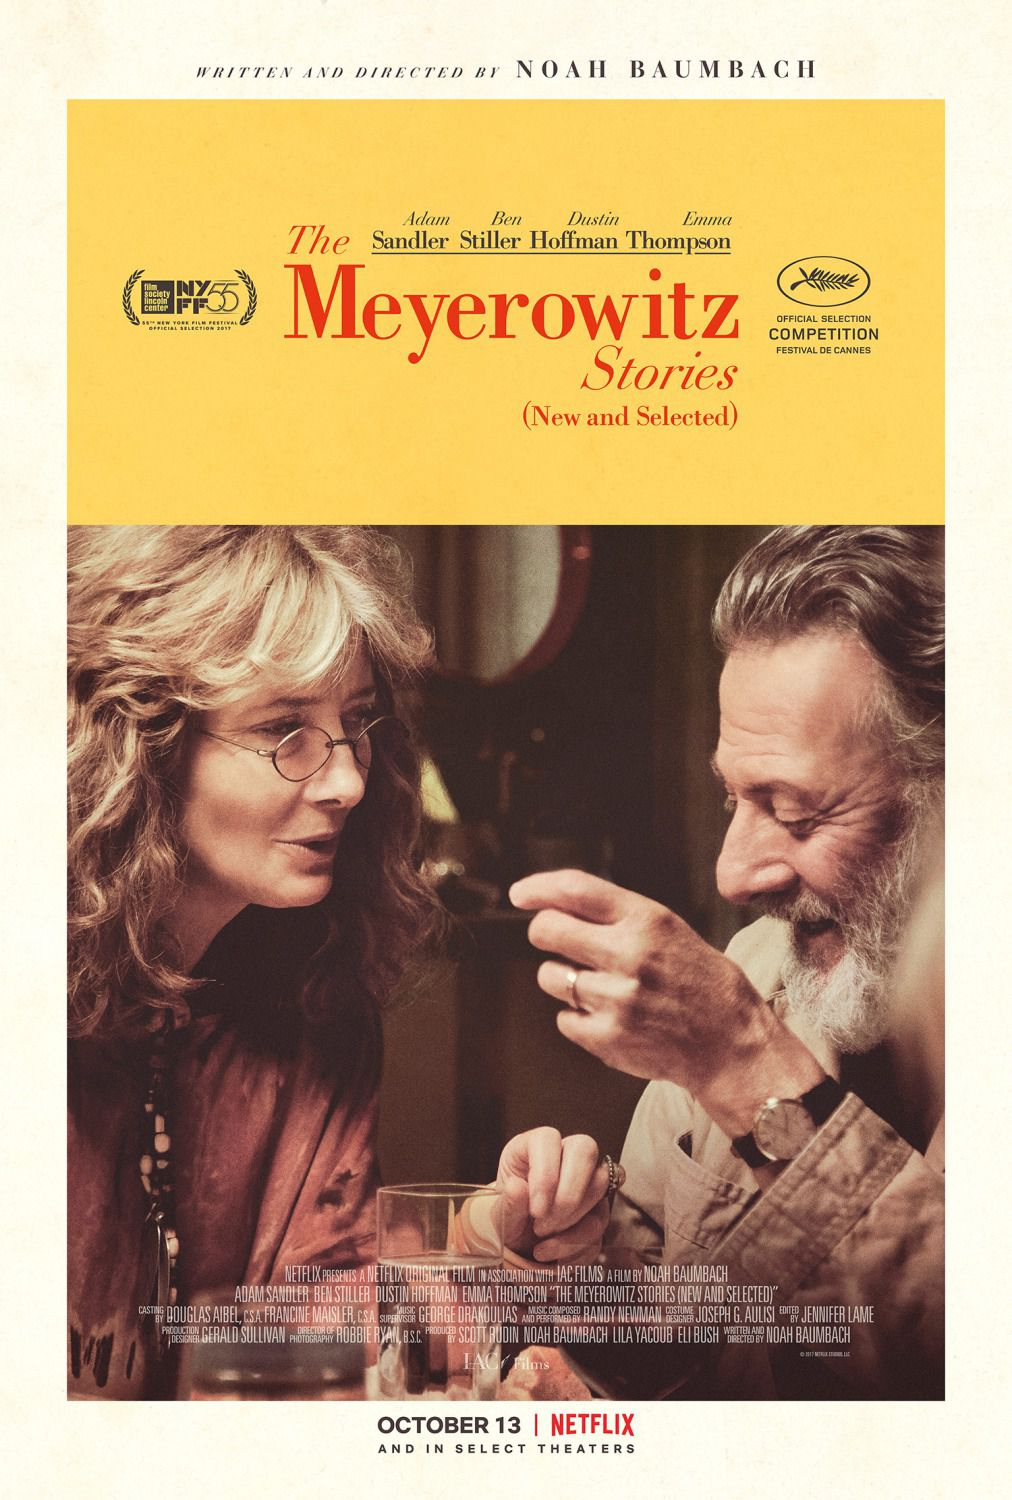 The Meyerowitz stories - Dustin Hoffman - Emma Thompson - film poster